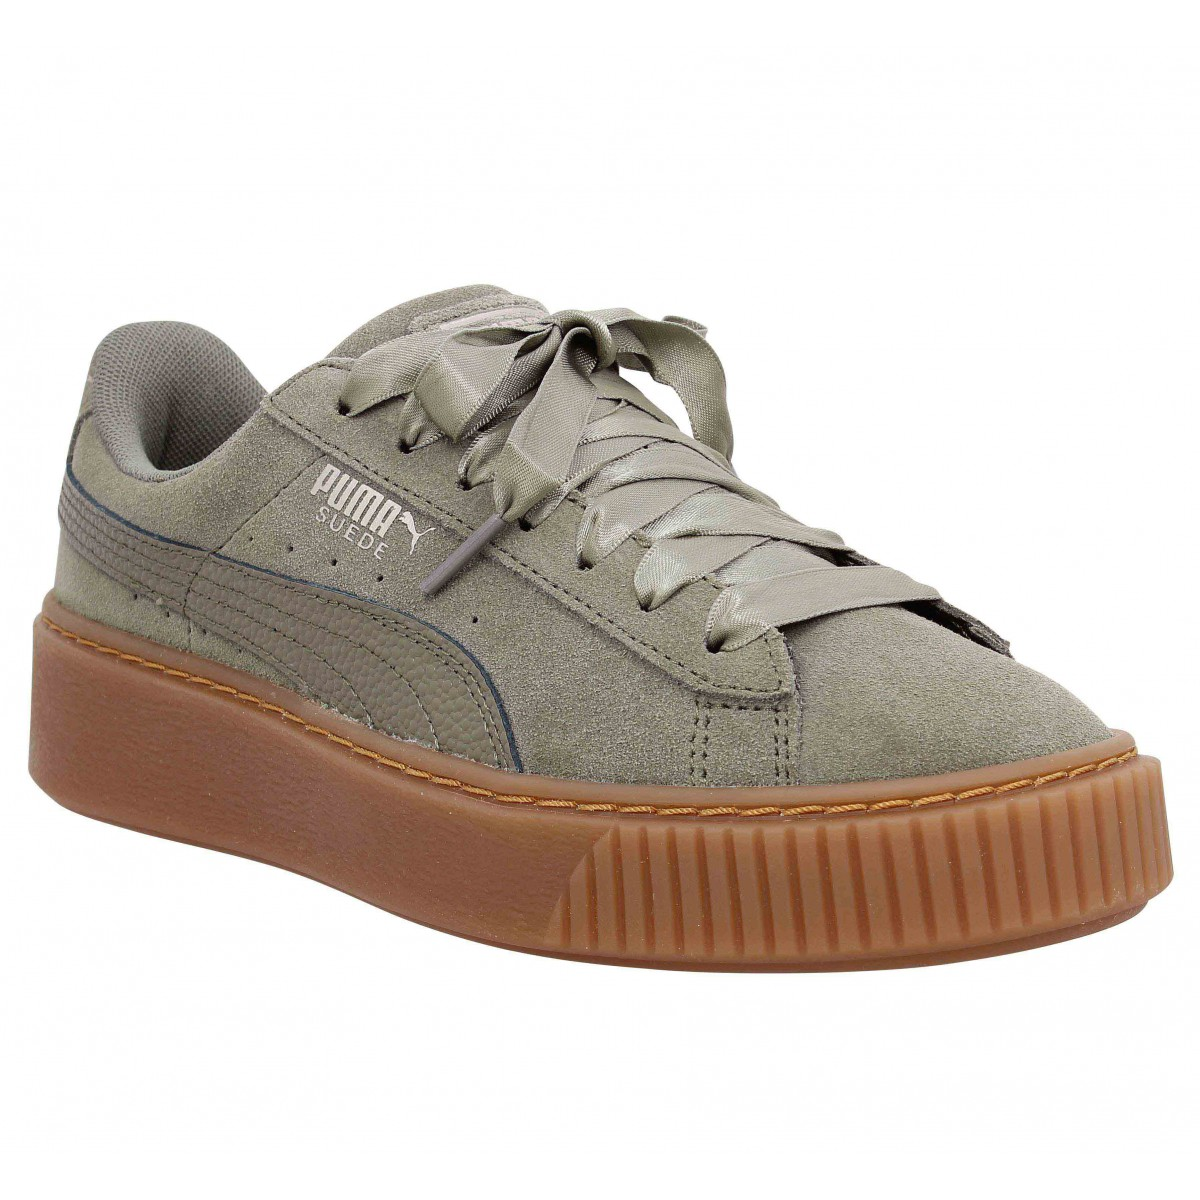 08252bea2d3 ... where to buy velours puma femme bubble platform chaussures femme suede  bungee azdniq e533c c48f8